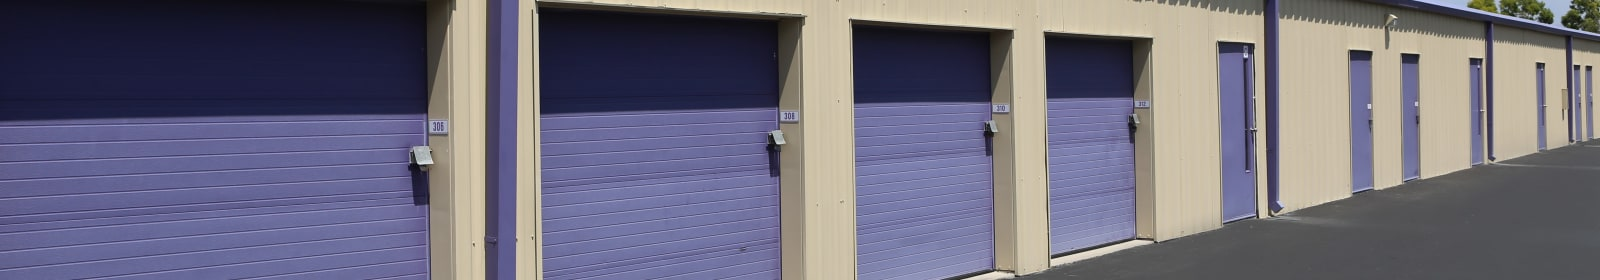 Information about the neighborhood at Midgard Self Storage in Murrells Inlet, South Carolina